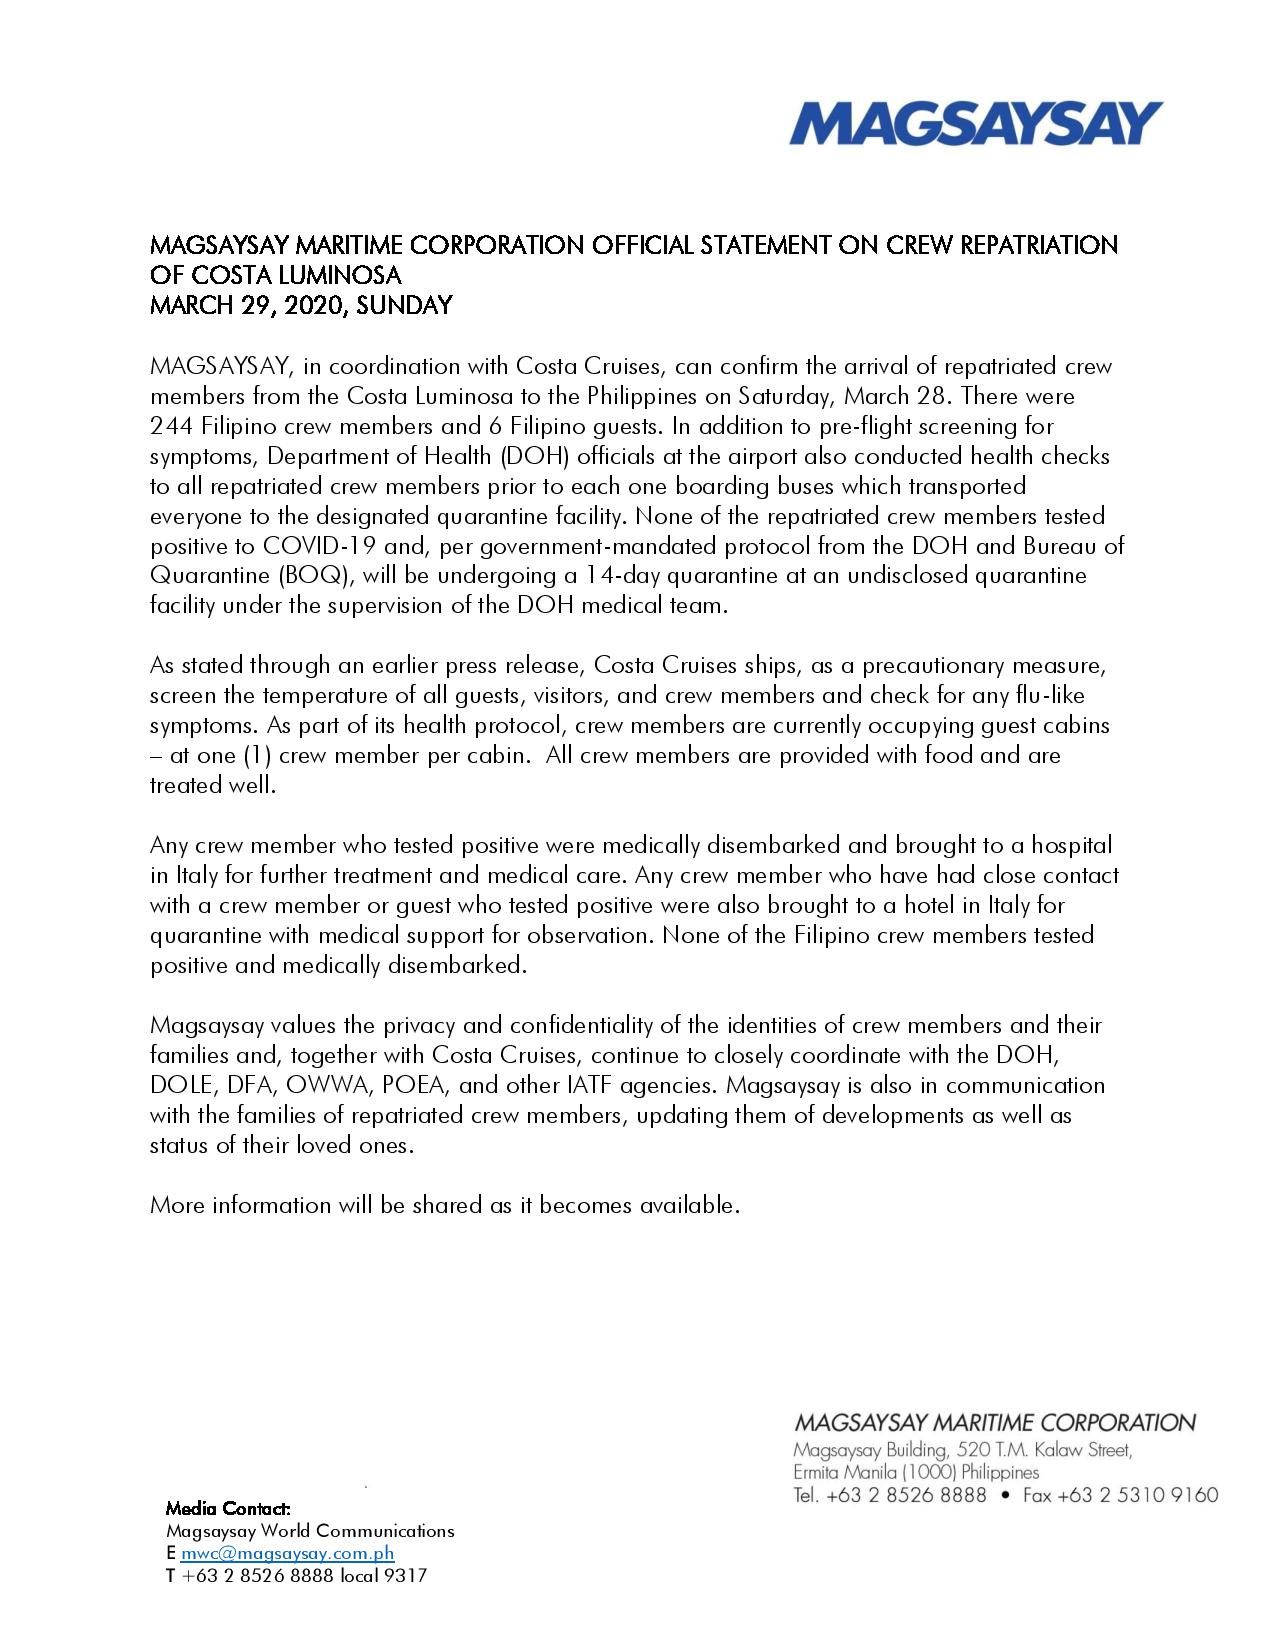 Official Updates of Magsaysay on Crew Repatriation of Costa Luminosa - March 29-page-001.jpg